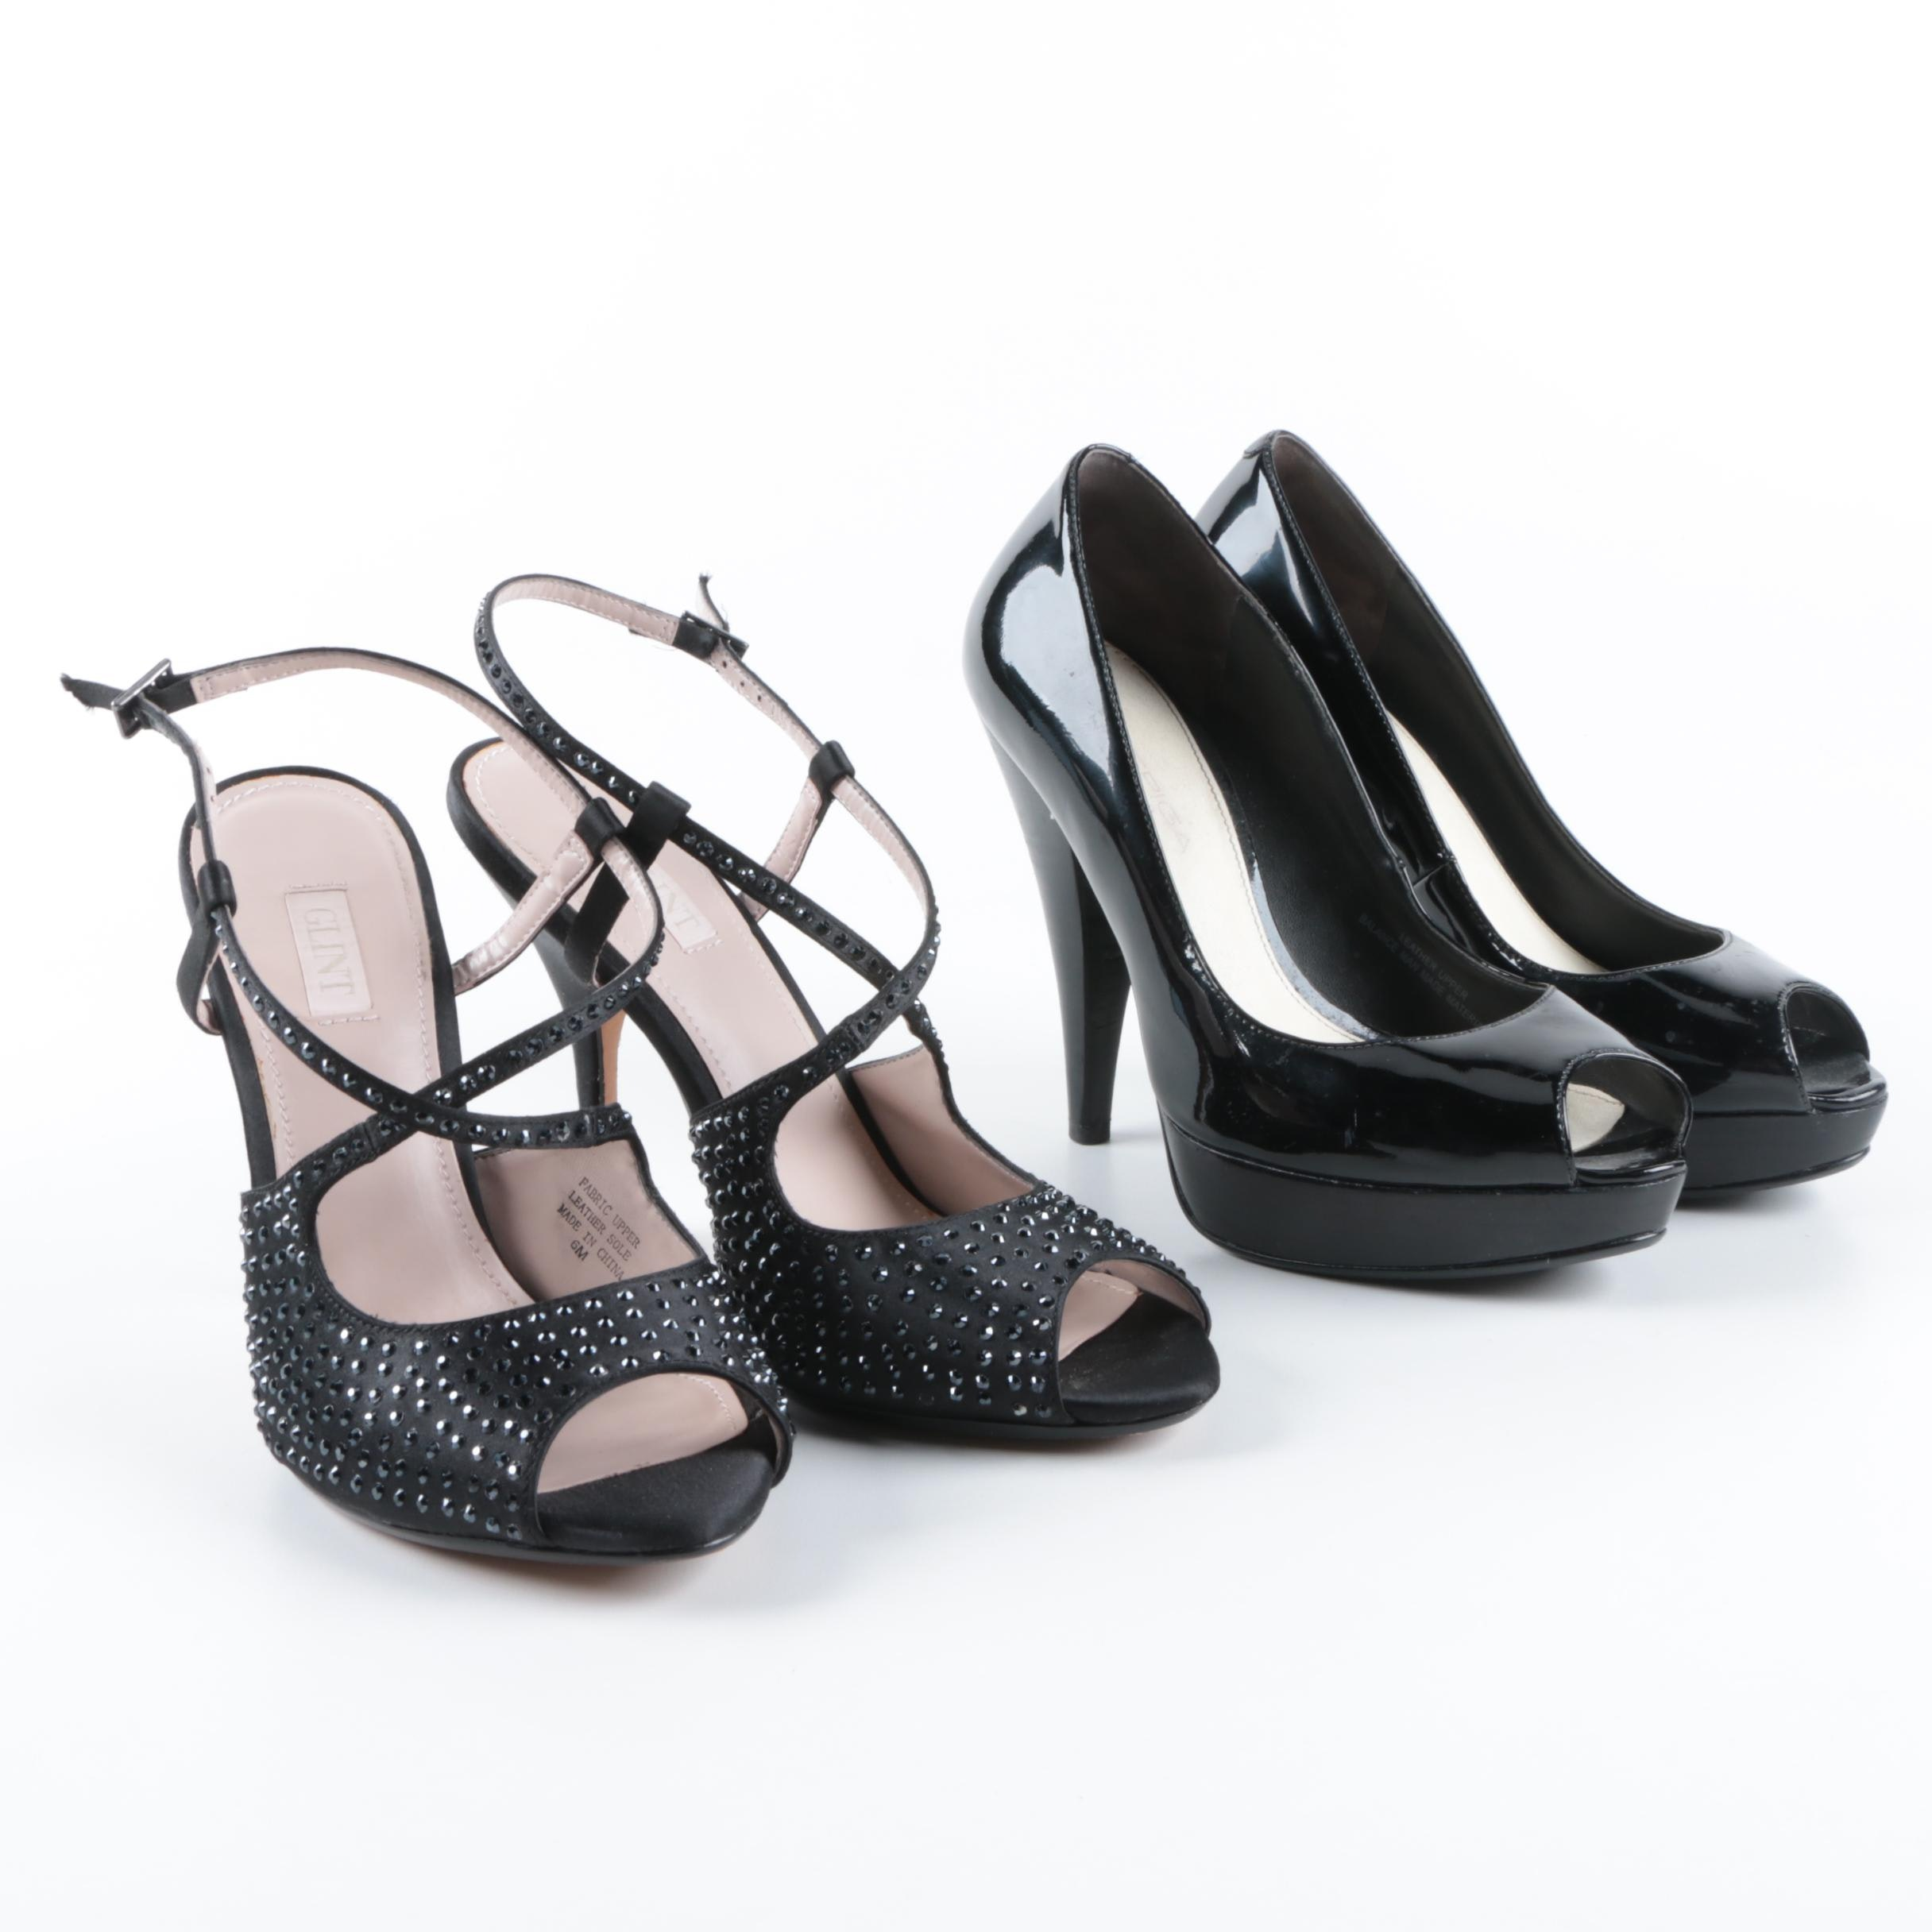 Via Spiga and Glint Black High Heels